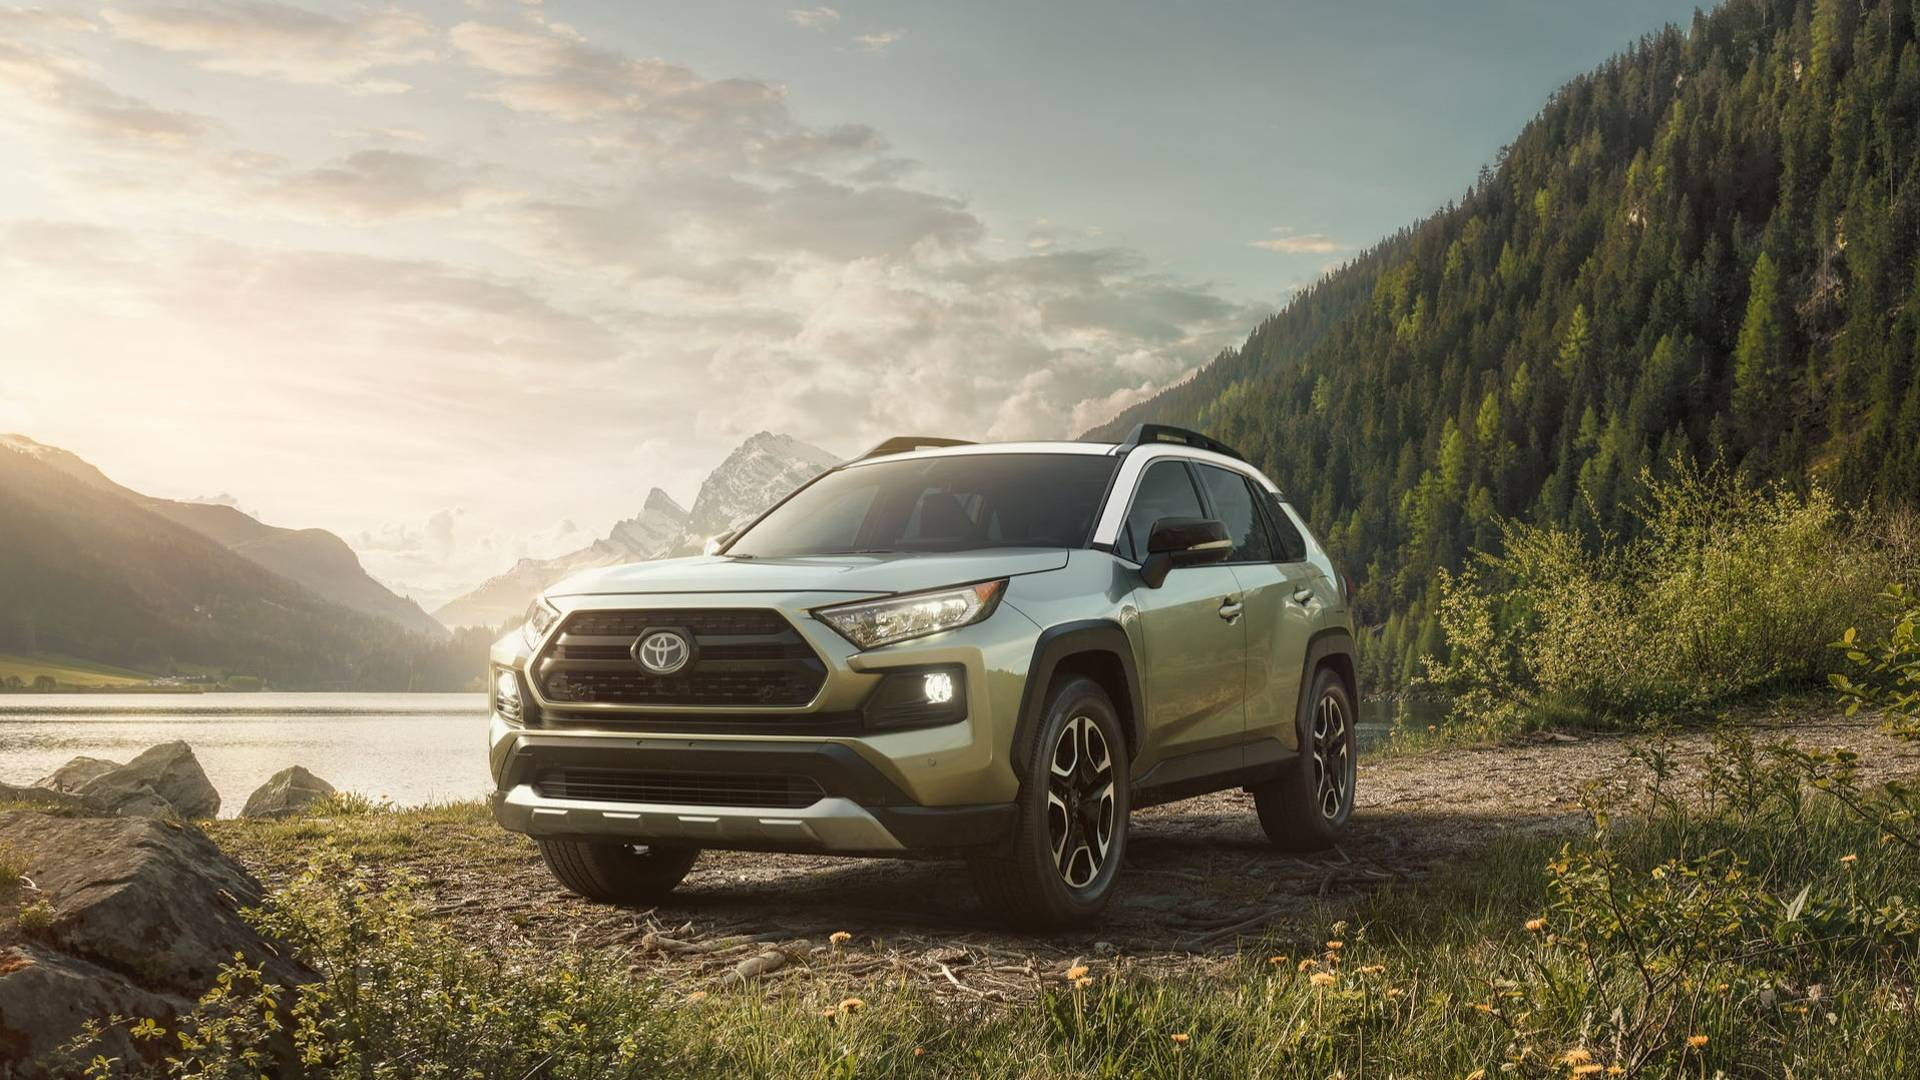 The All-New 2019 Toyota RAV4 Debuts at the 2018 New York International Auto Show 4